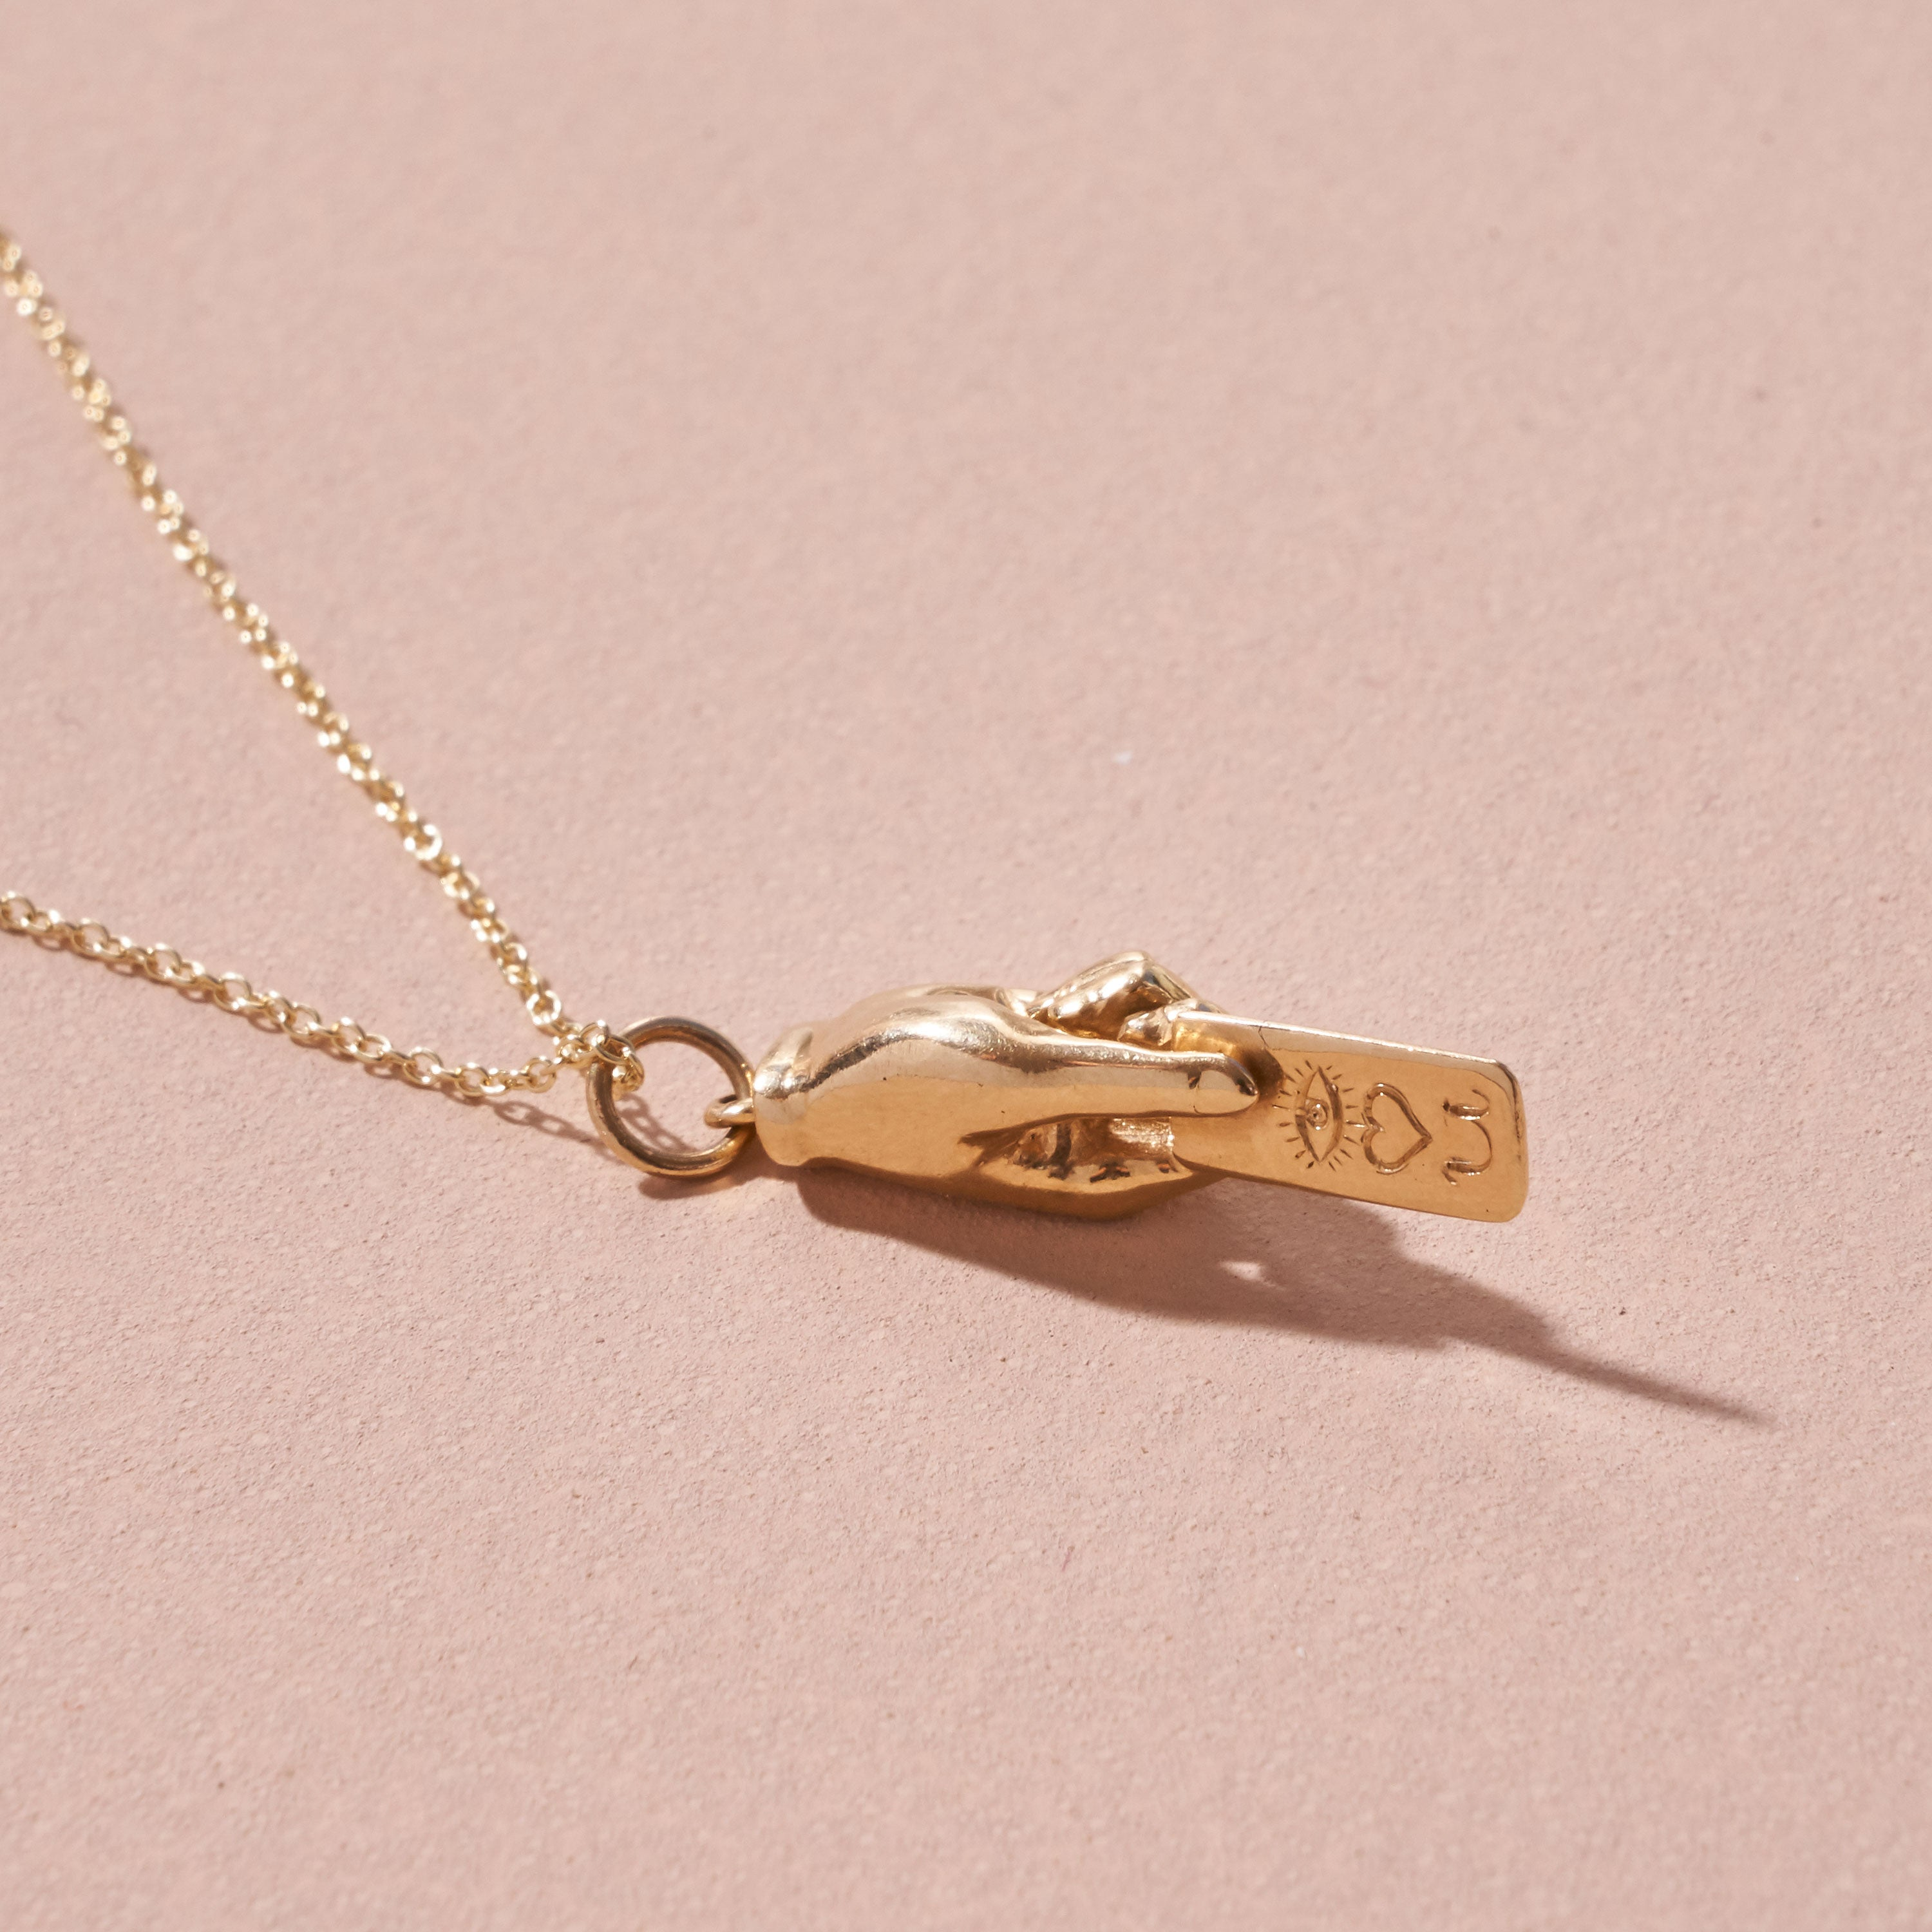 The F&B Love Letter Hand Charm